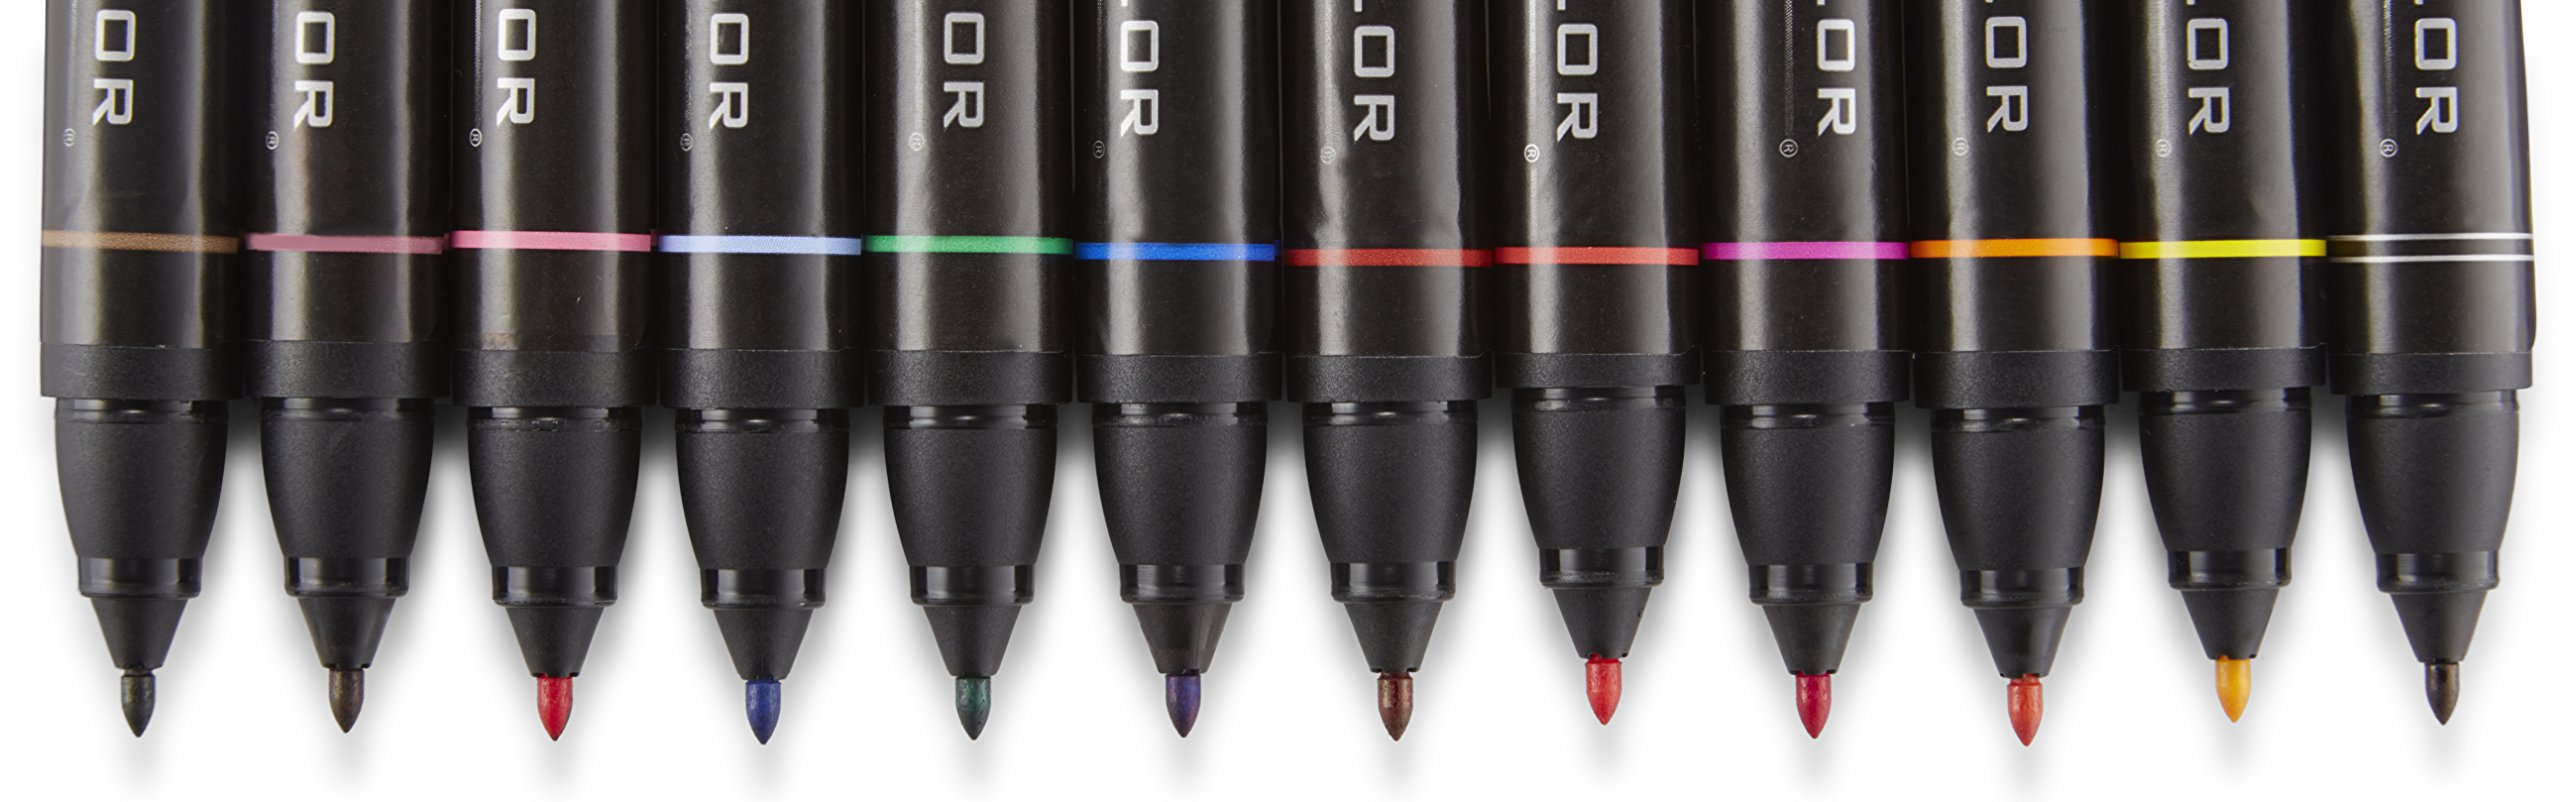 Prismacolor Premier Double-Ended Art Markers, Fine and Chisel Tip, 48-Count by Prismacolor (Image #11)